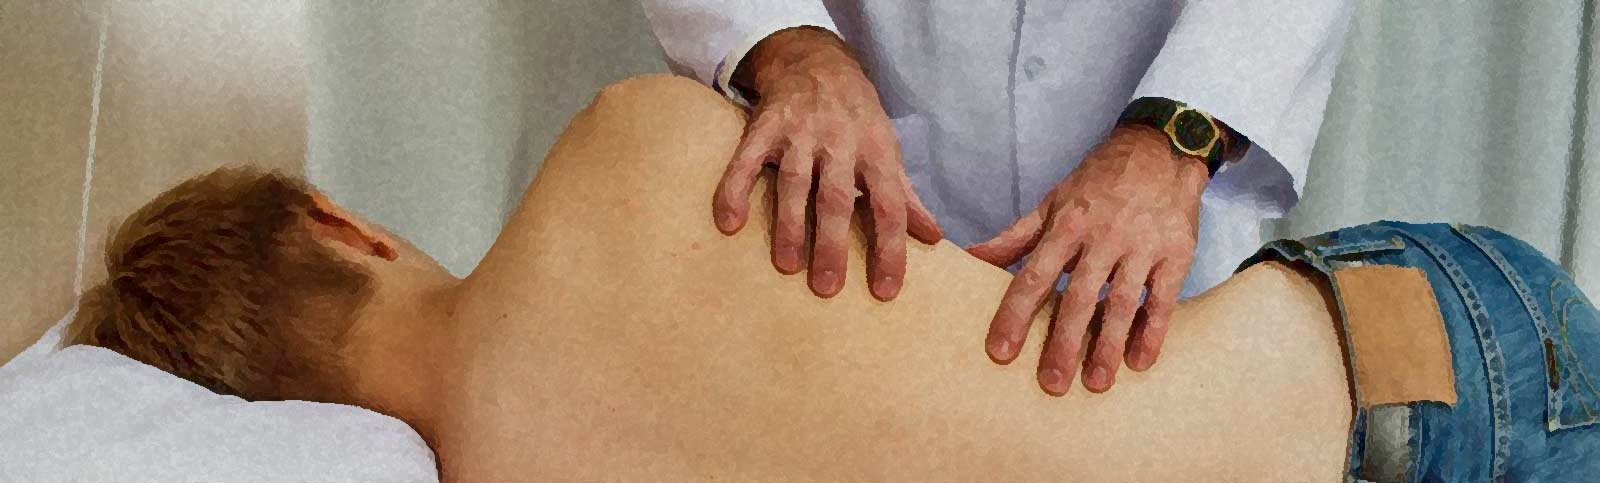 Acupuncture: Old Medicine for a New Generation